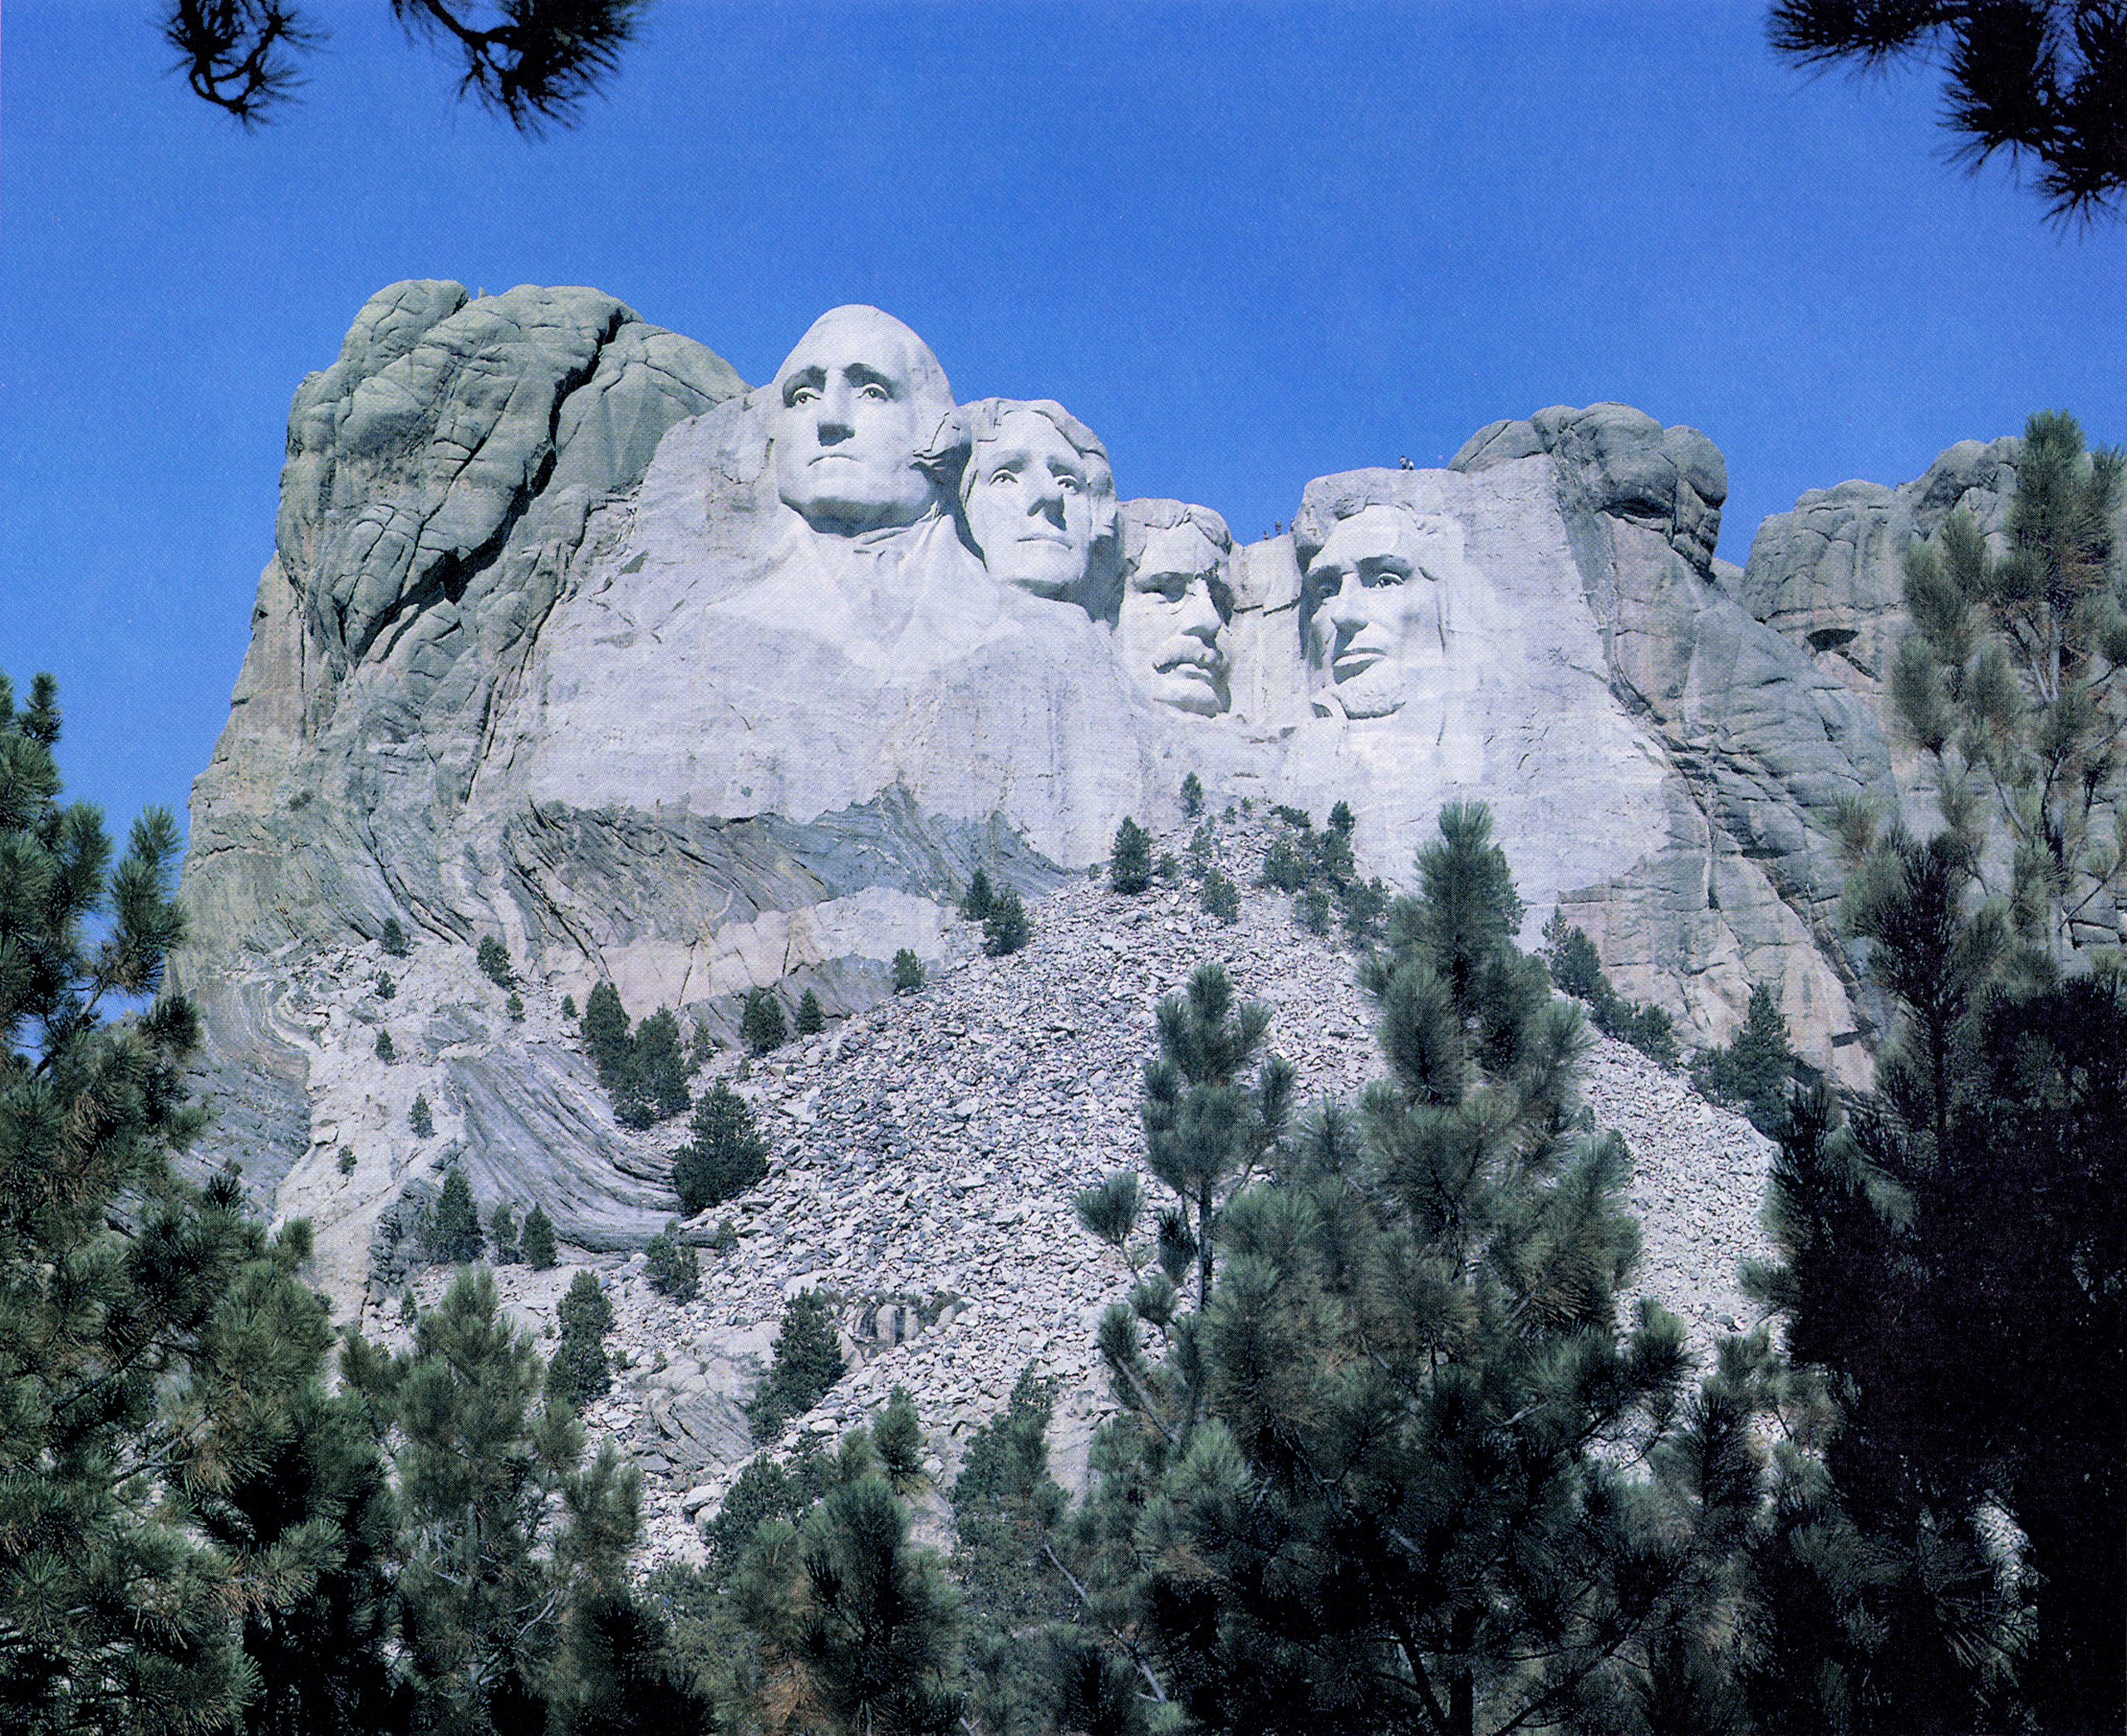 Mount Rushmore, as it appears today, with visitors climbing atop the monument.